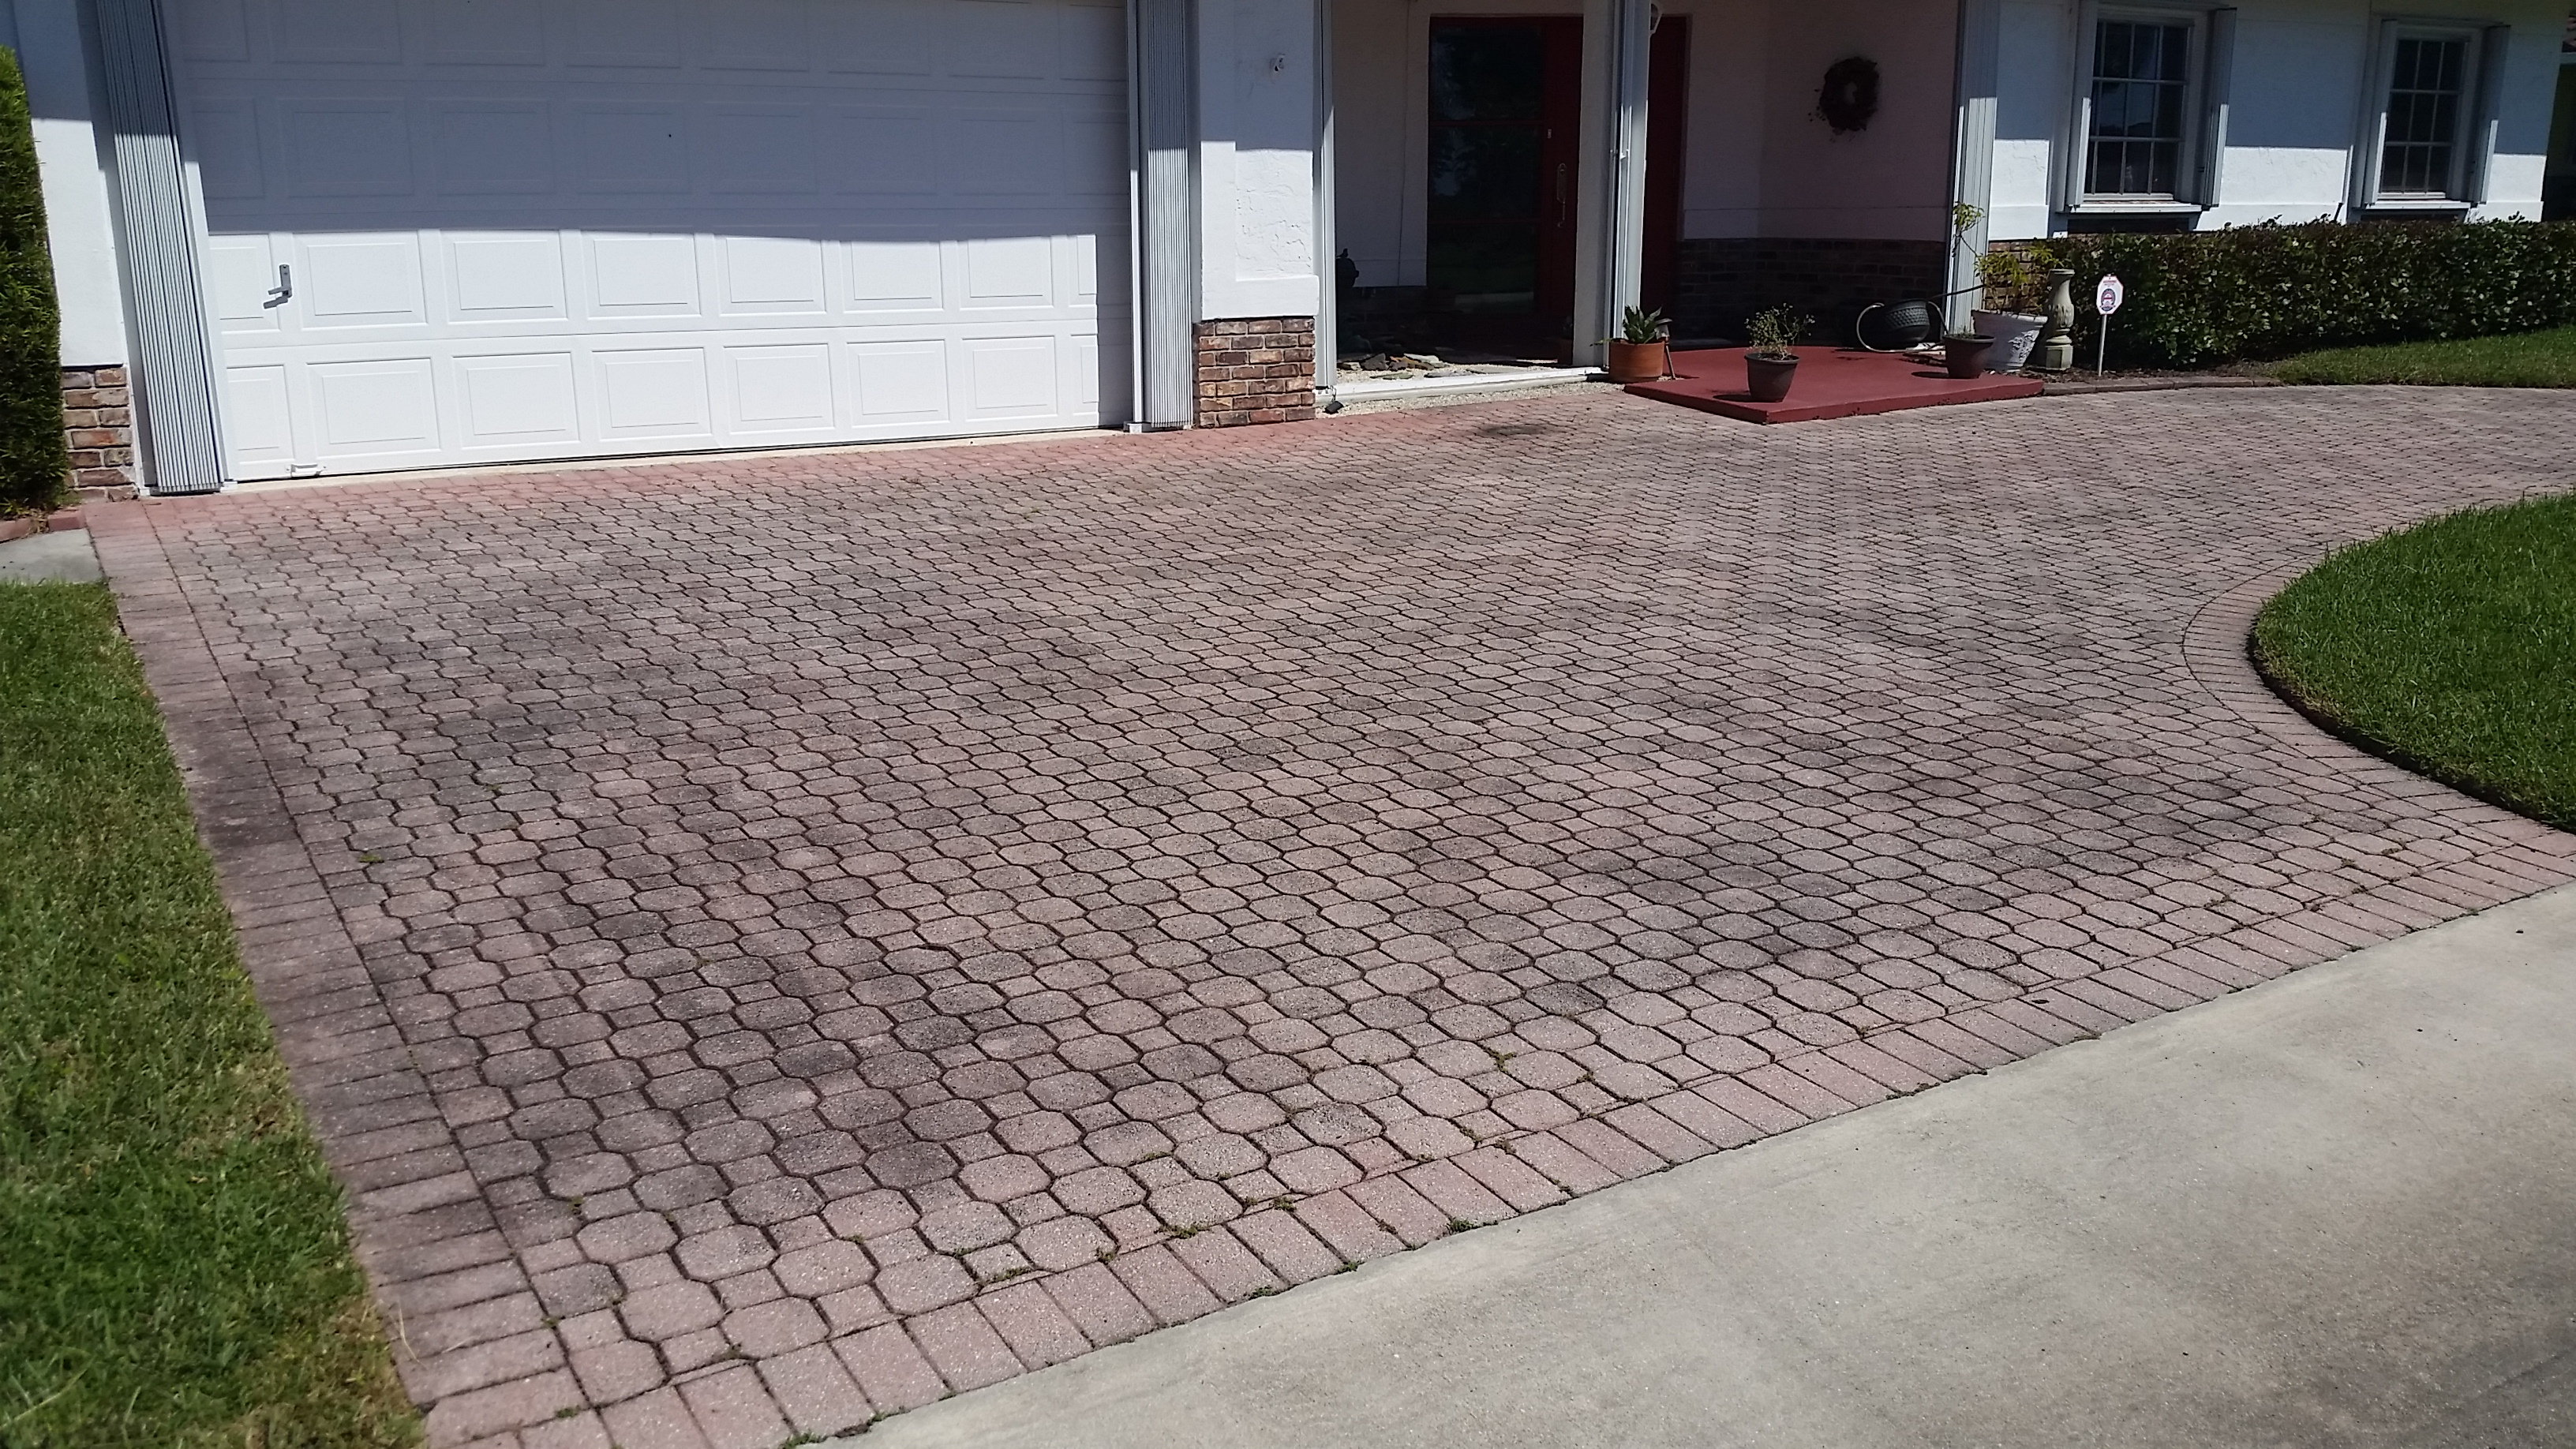 Driveway Cleaning Pressure Cleaning Roof Cleaning